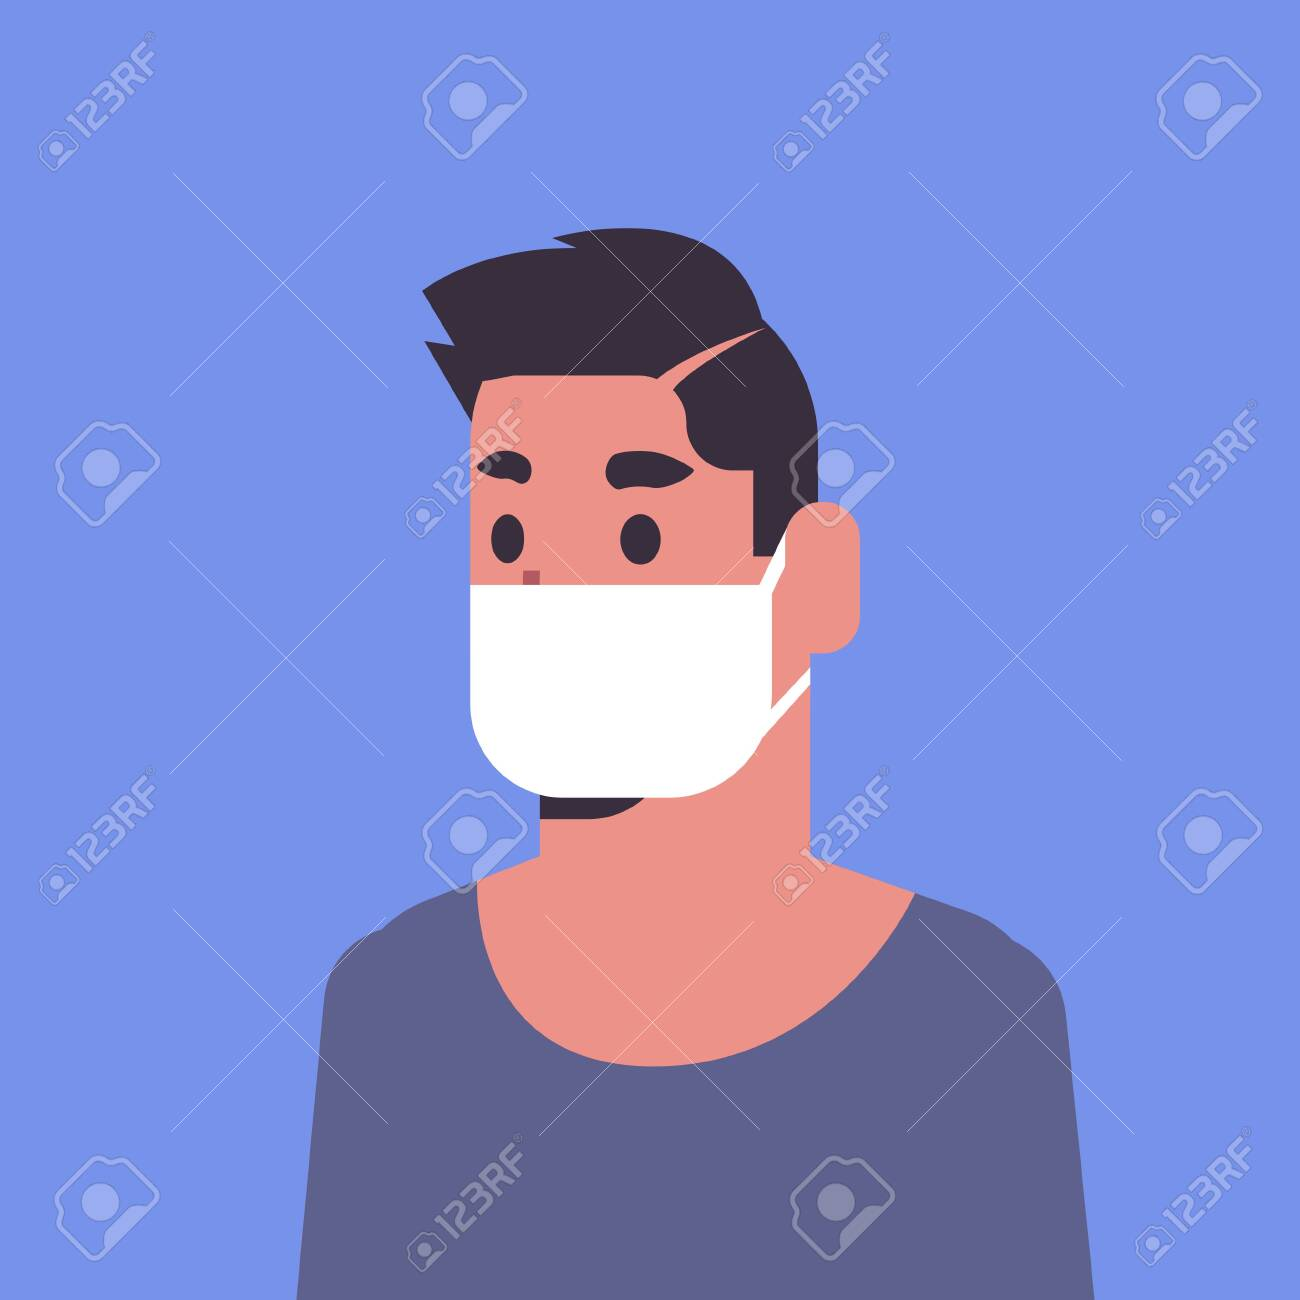 man wearing face mask environmental industrial smog dust toxic air pollution and virus protection concept male cartoon character portrait flat vector illustration - 129114480